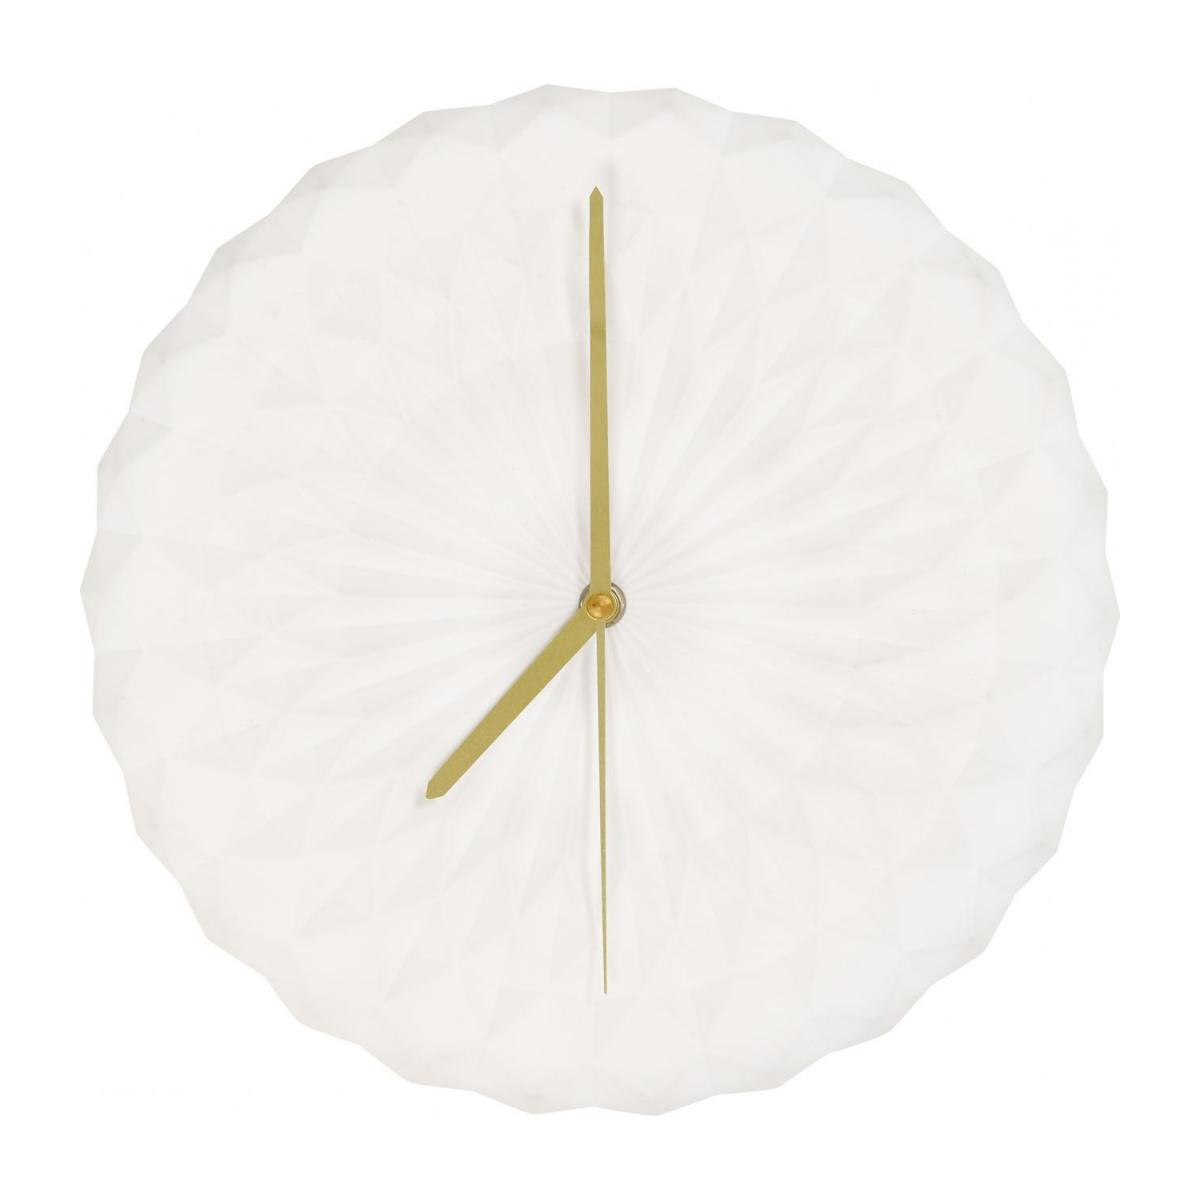 Reloj de pared - Porcelana n°2